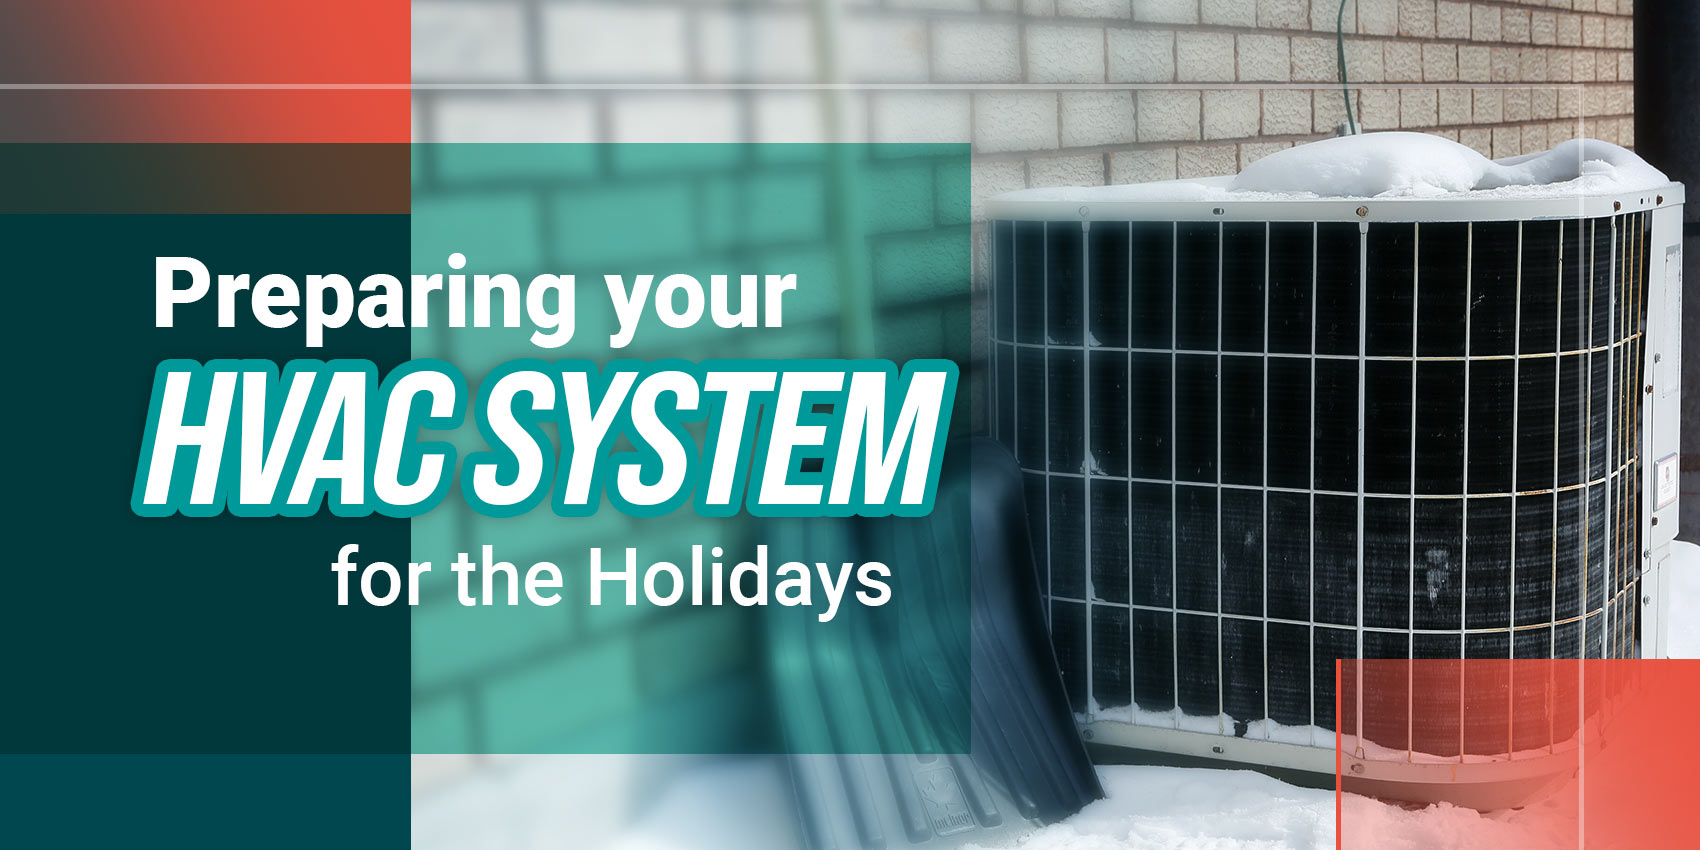 Quality_GuestPost_Preparing-your-HVAC-System-for-the-Holidays